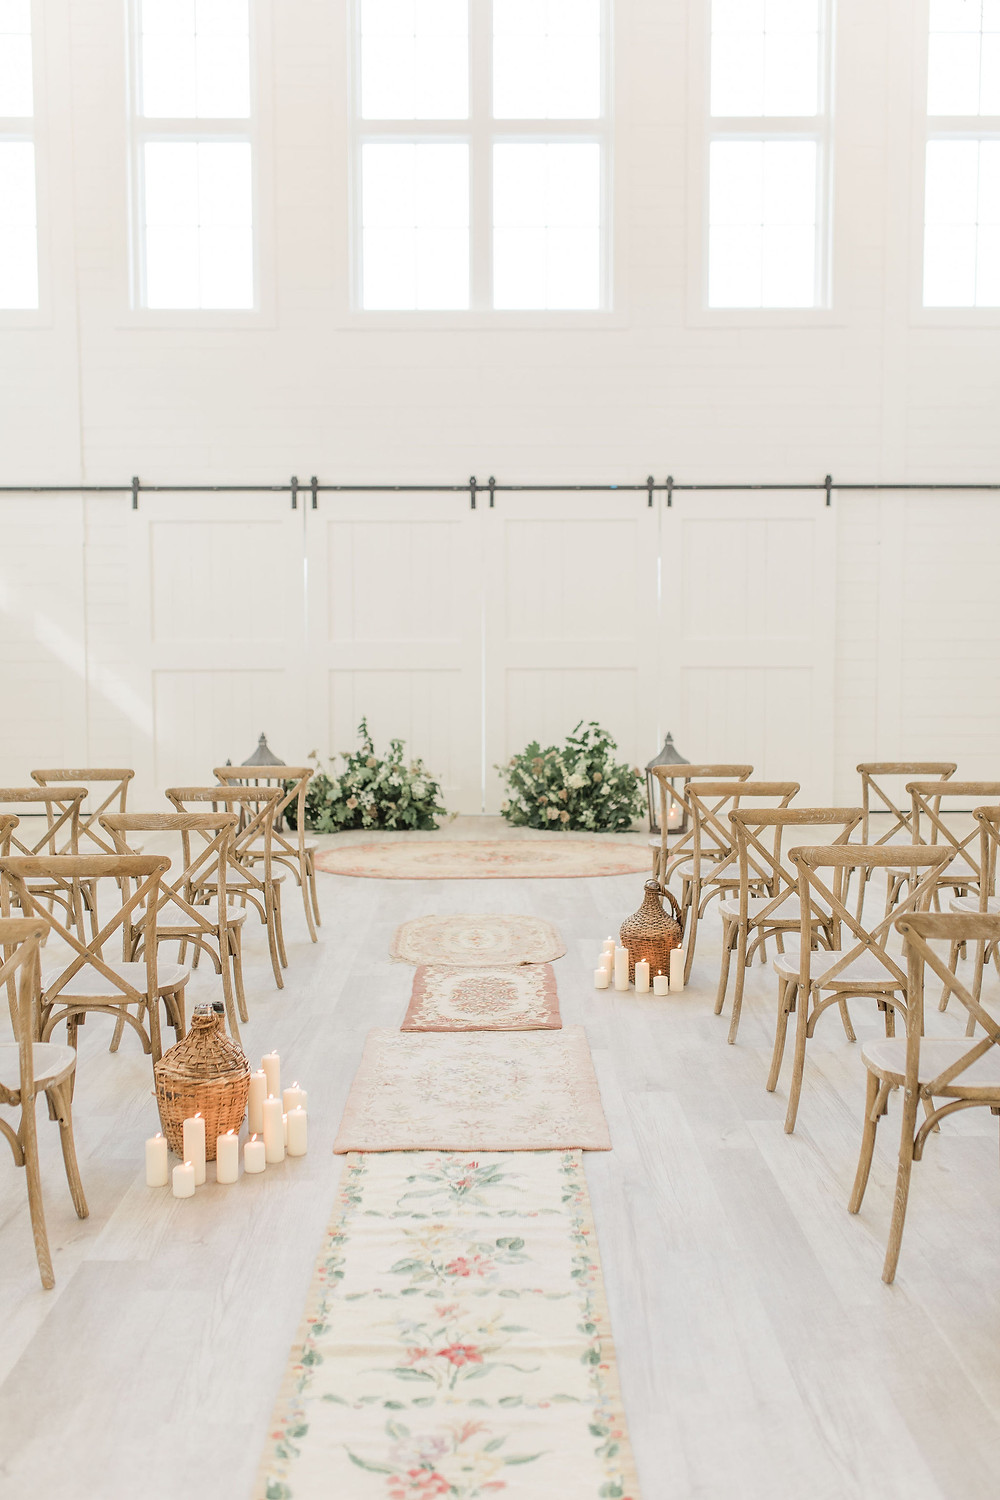 An aisle runner of vintage hooked rugs carried through the color palette for this vineyard wedding.